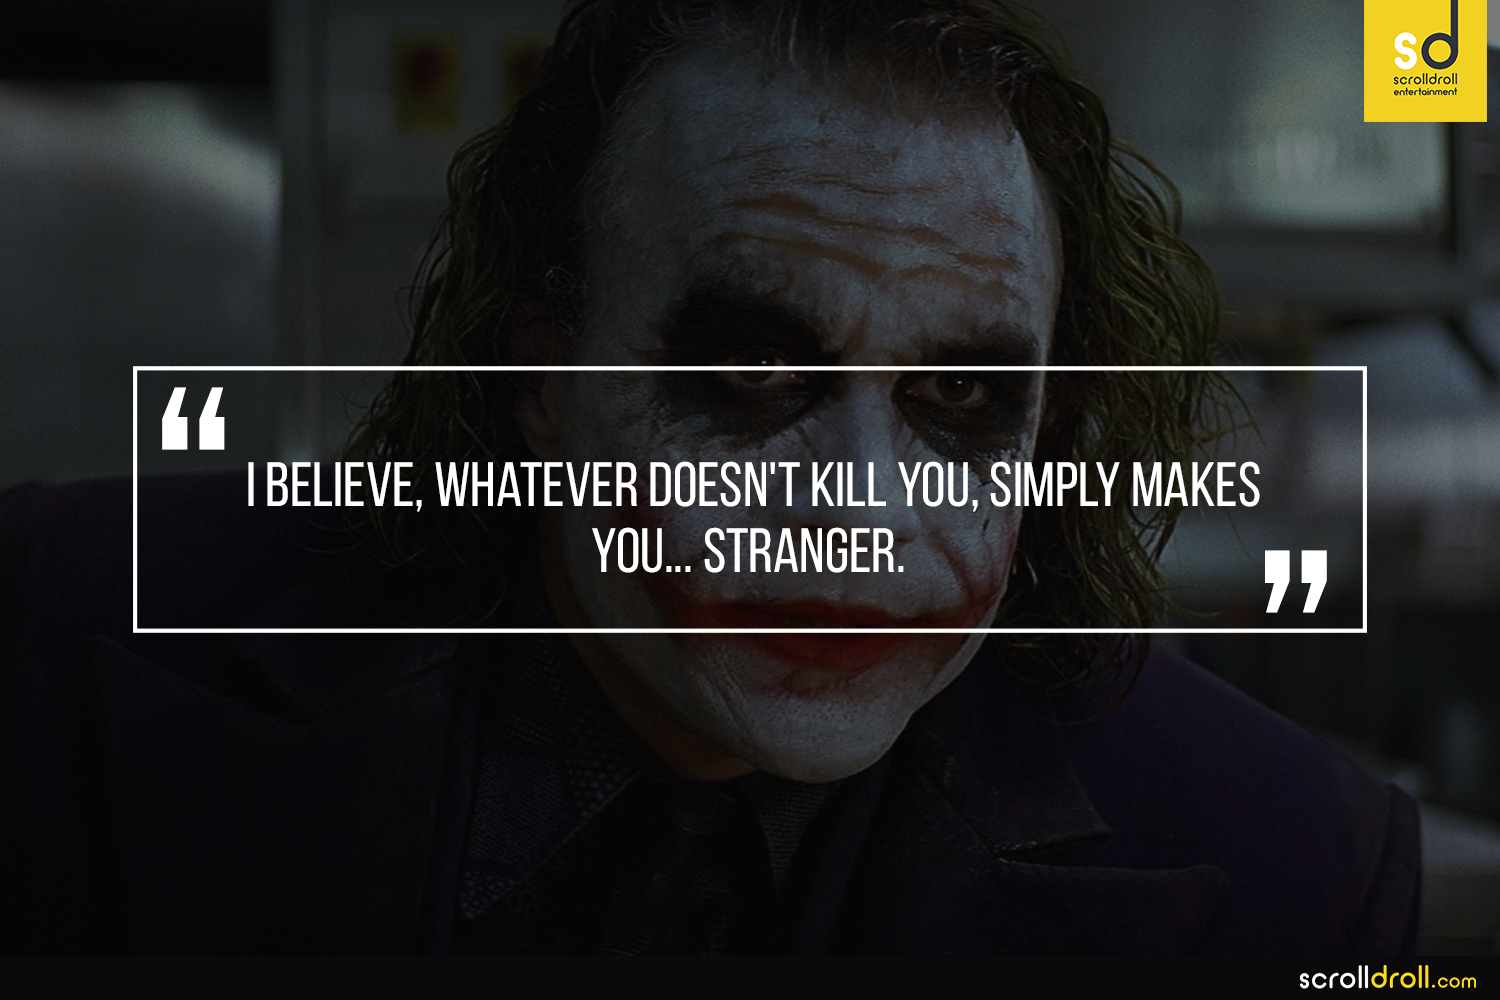 Joker Quotes: 14 Quotes From The Joker Which Prove Why He Makes More